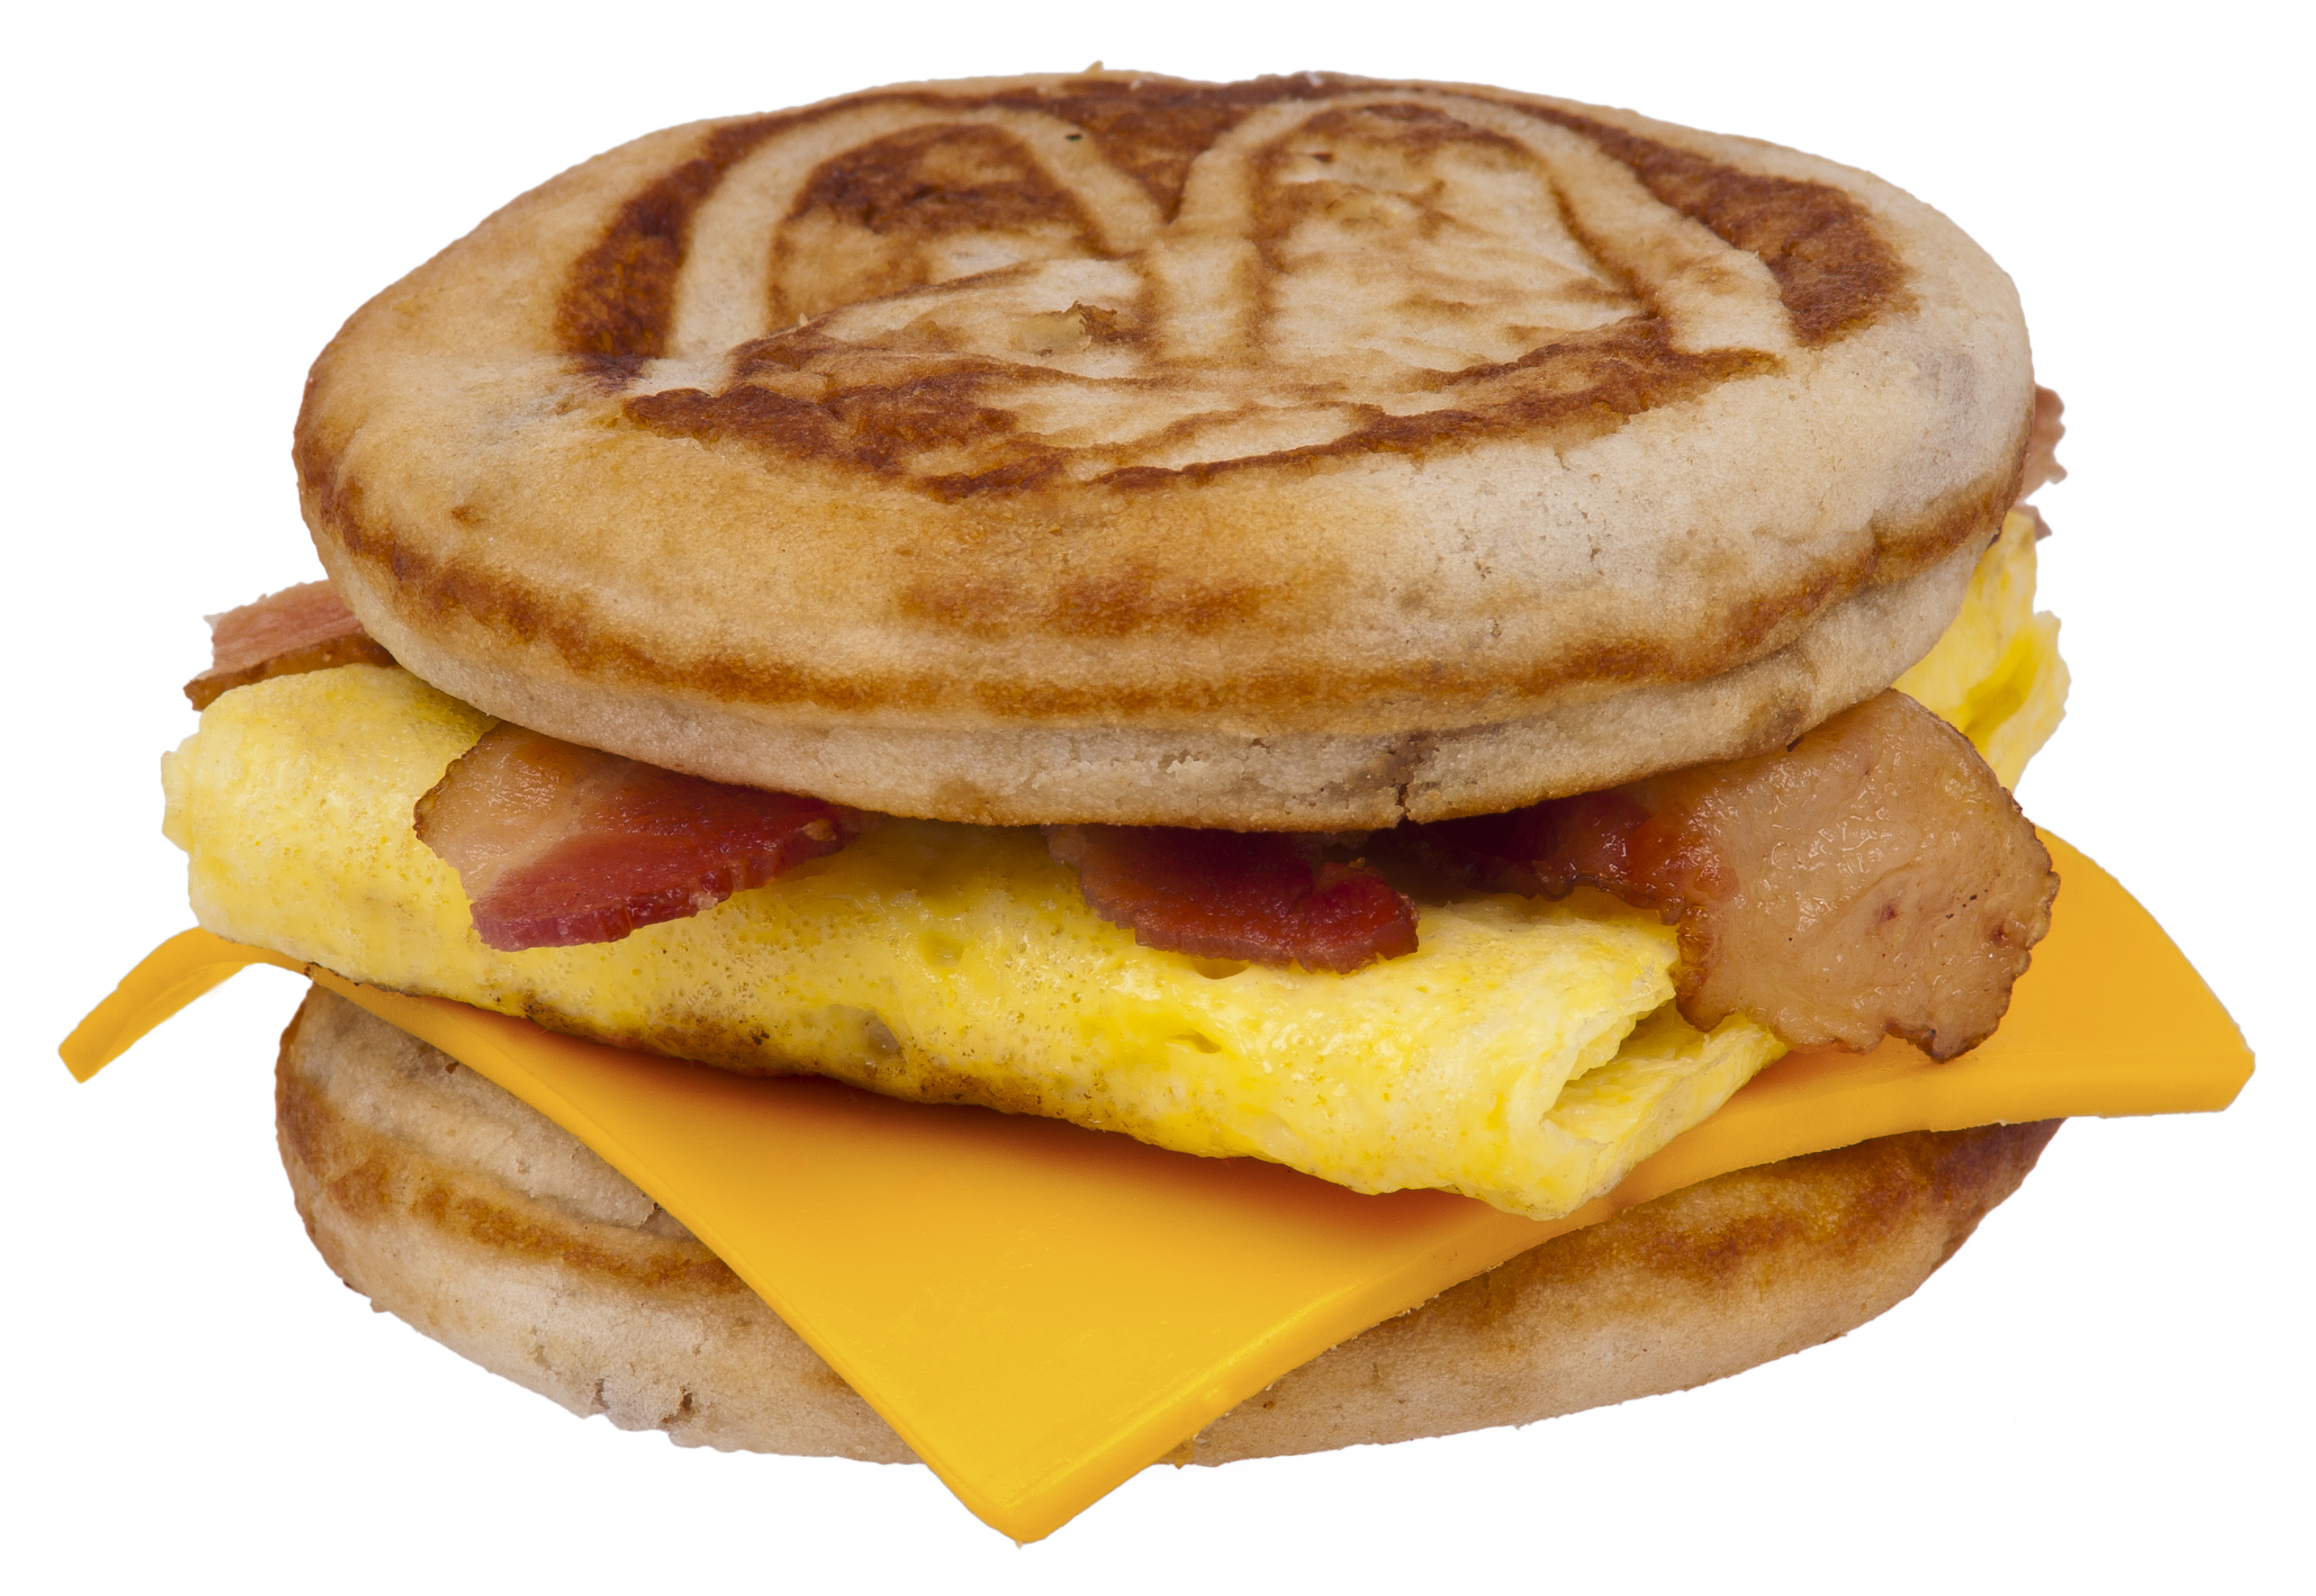 Supple Wikimedia Commons Expands Breakfast Business Insider Mcdonald S All Day Breakfast Gone Mcdonald S All Day Breakfast Quebec nice food Mcdonalds All Day Breakfast